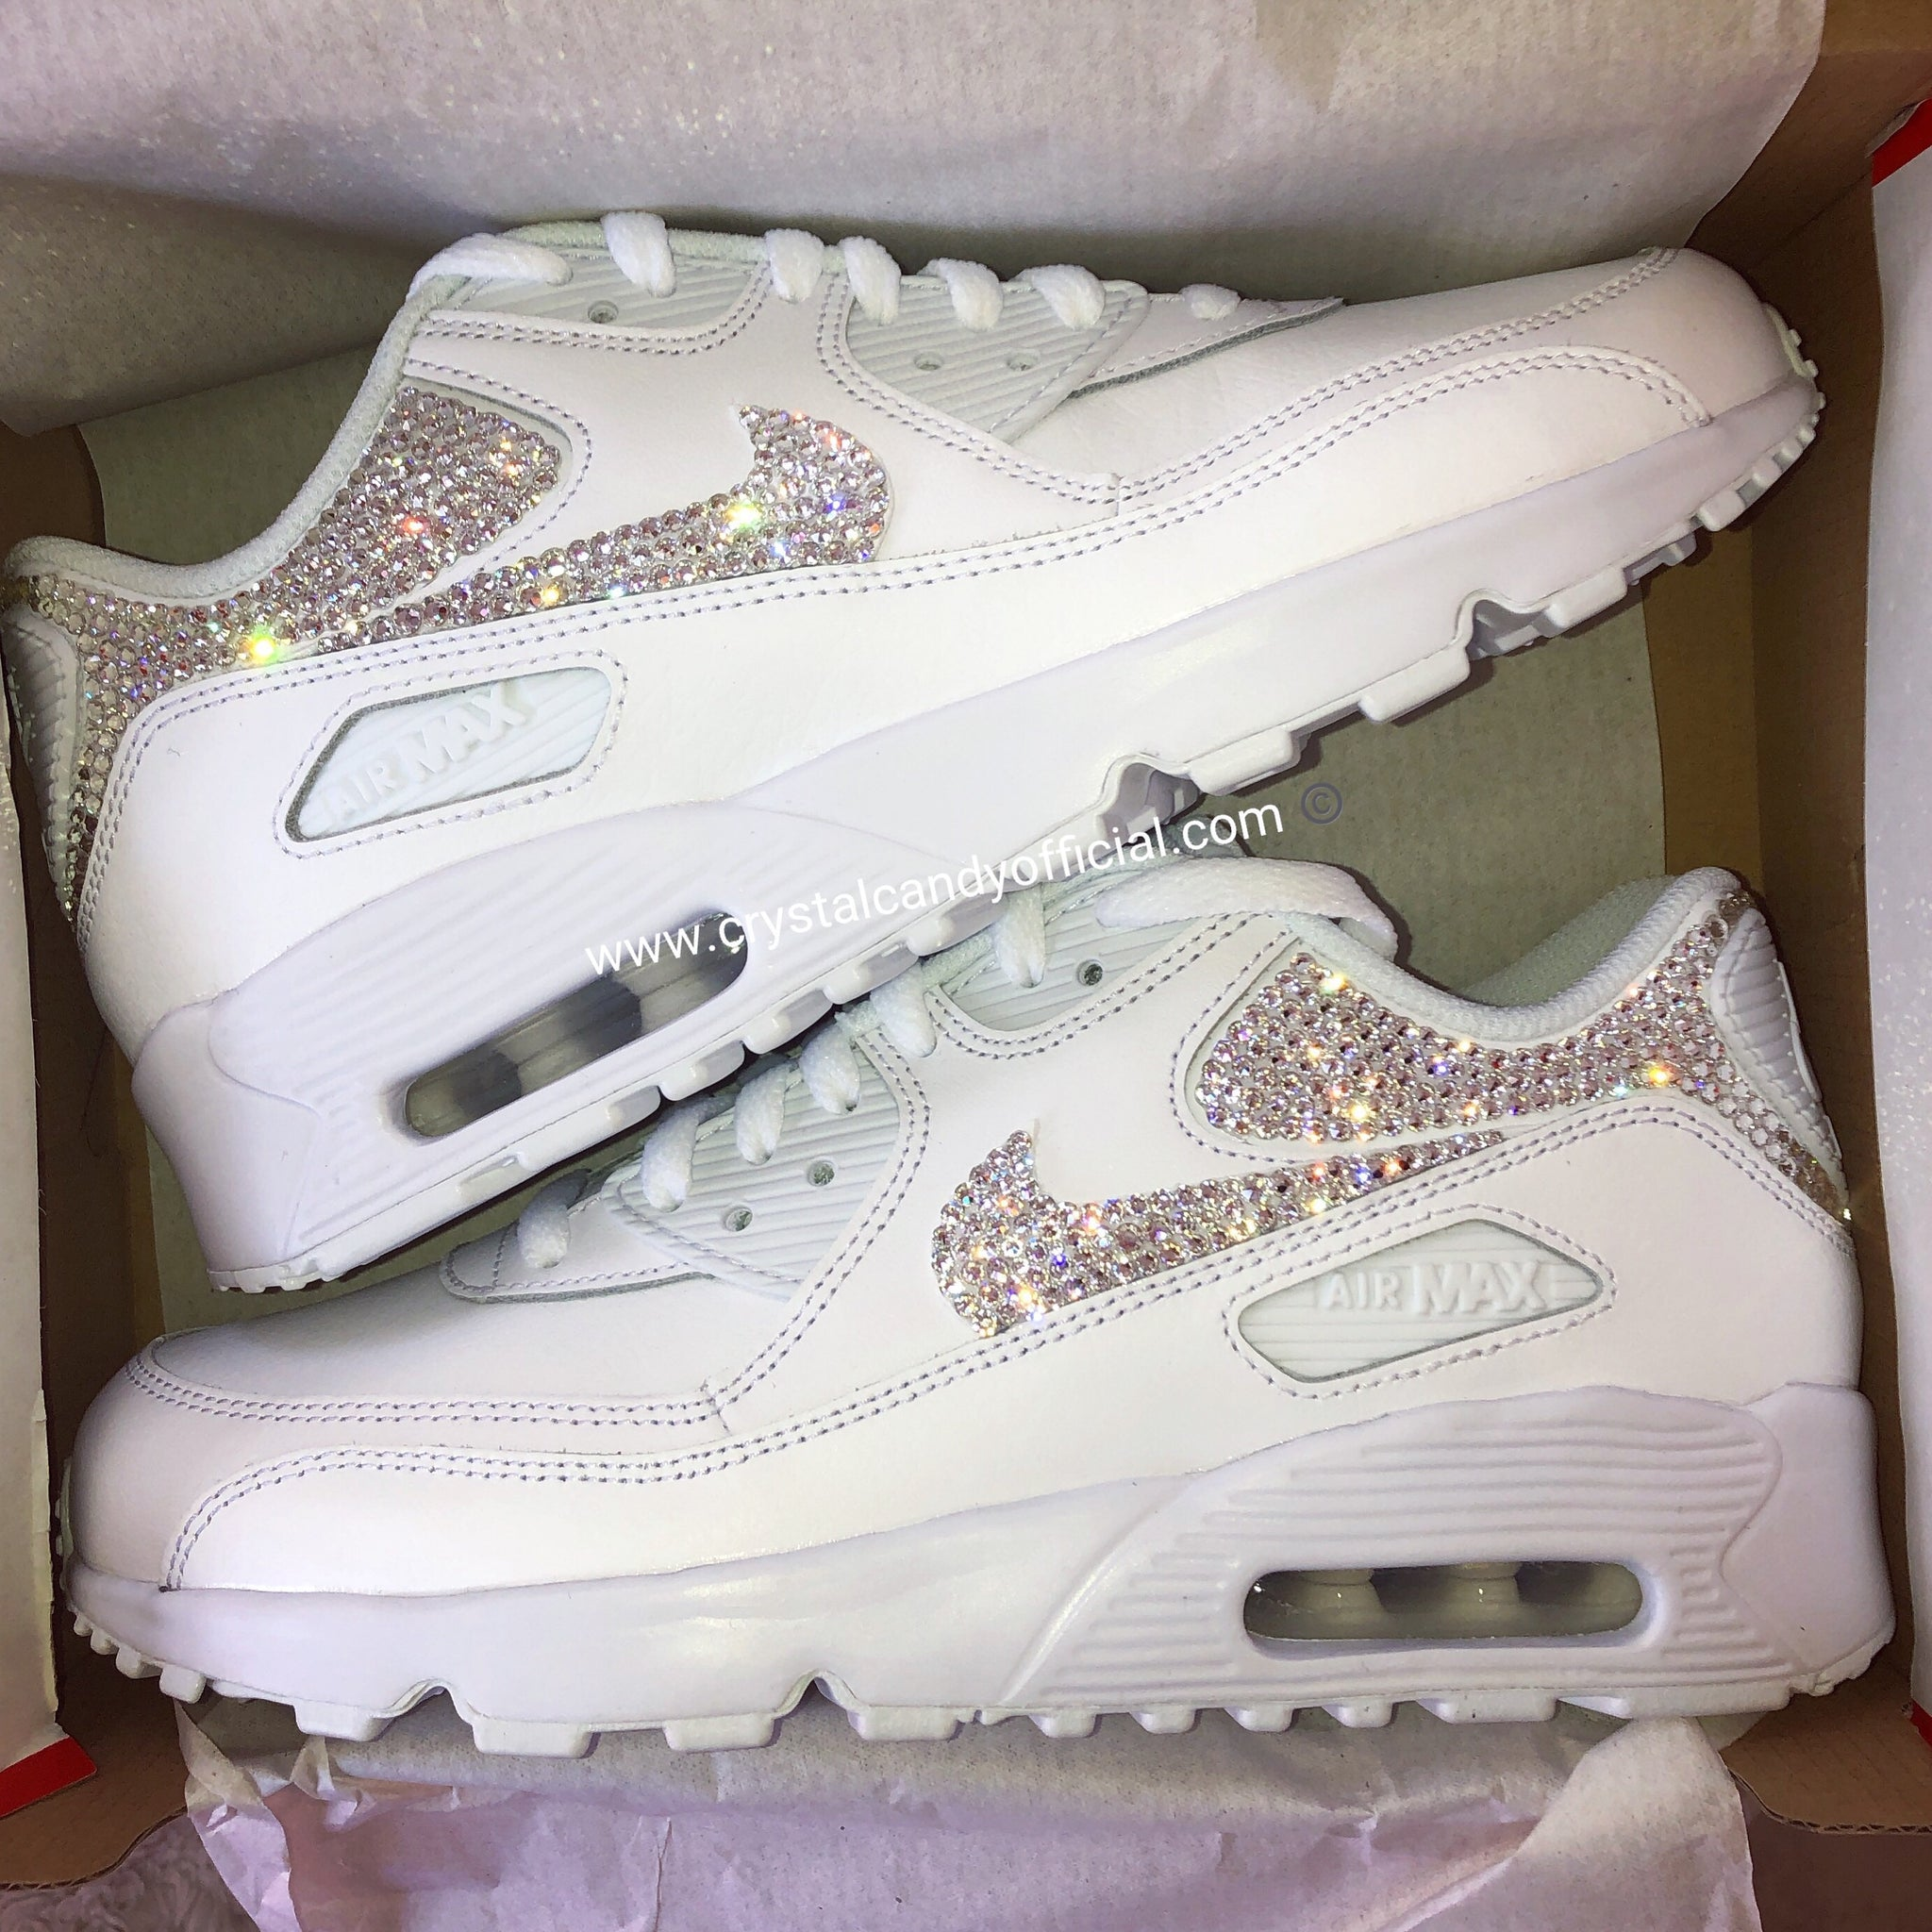 8273a822816 Crystal Nike Air Max 90's in White (backs & ticks)